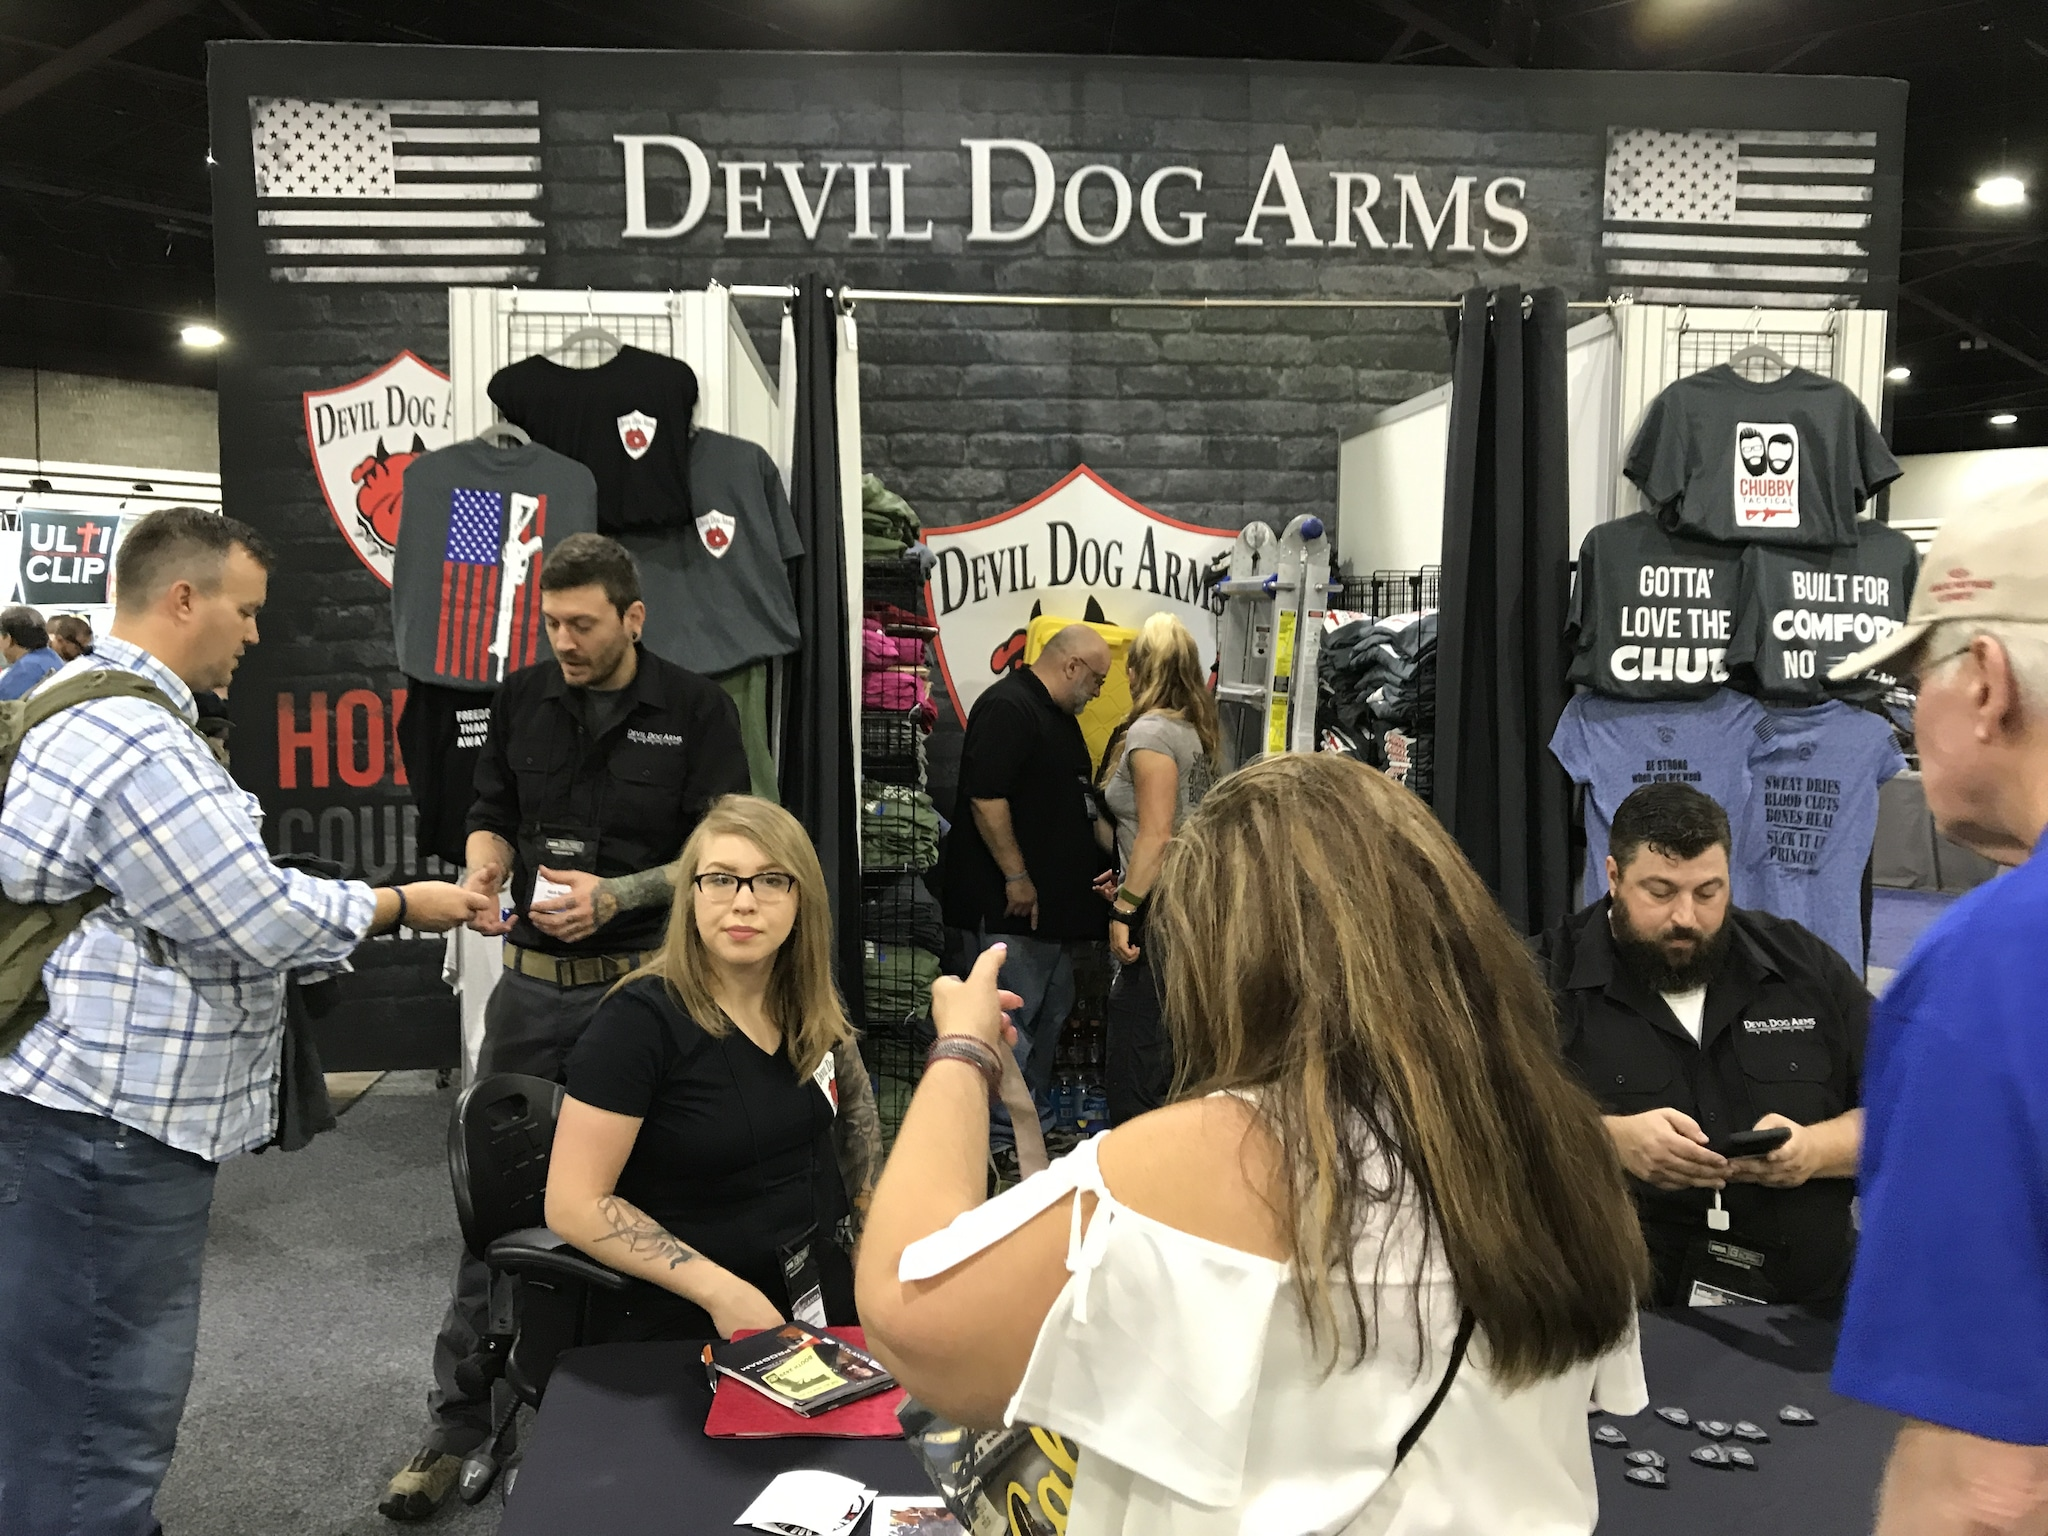 Devil Dog Arms booth at the 2017 NRA convention. (Photo: Jared Morgan/Guns.com)